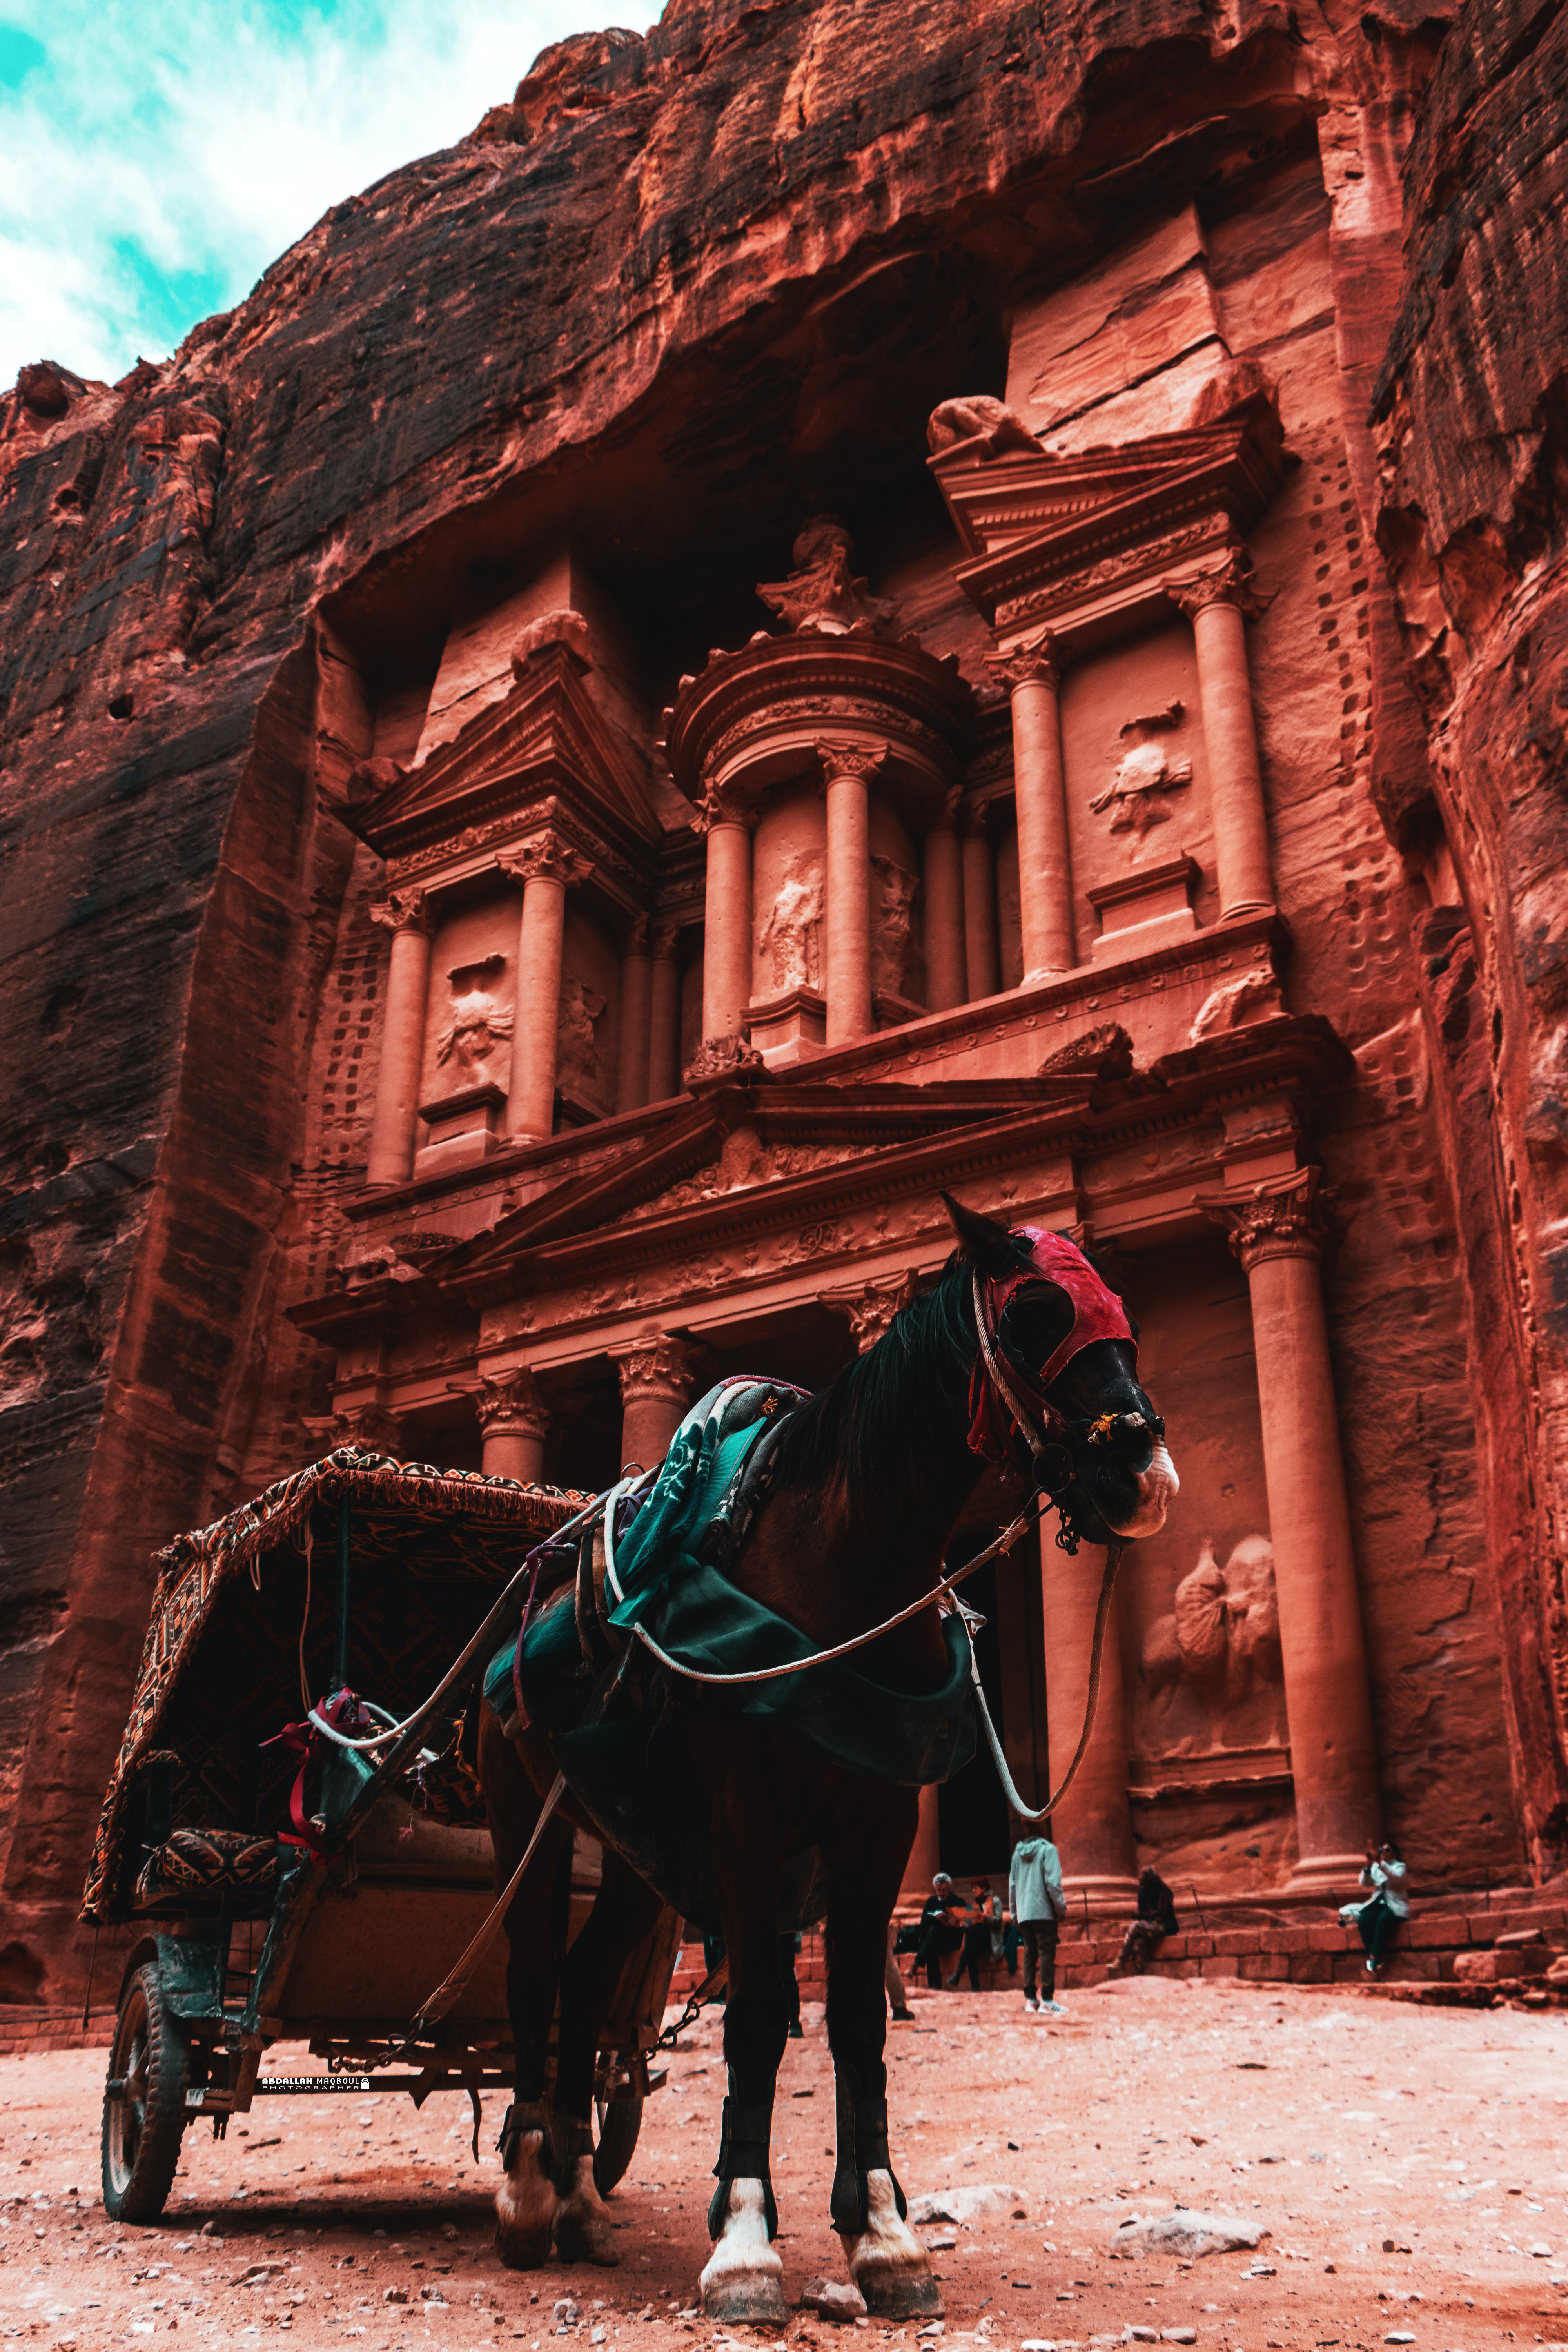 Black and Brown Horse Carriage Parked Beside Brown Temple